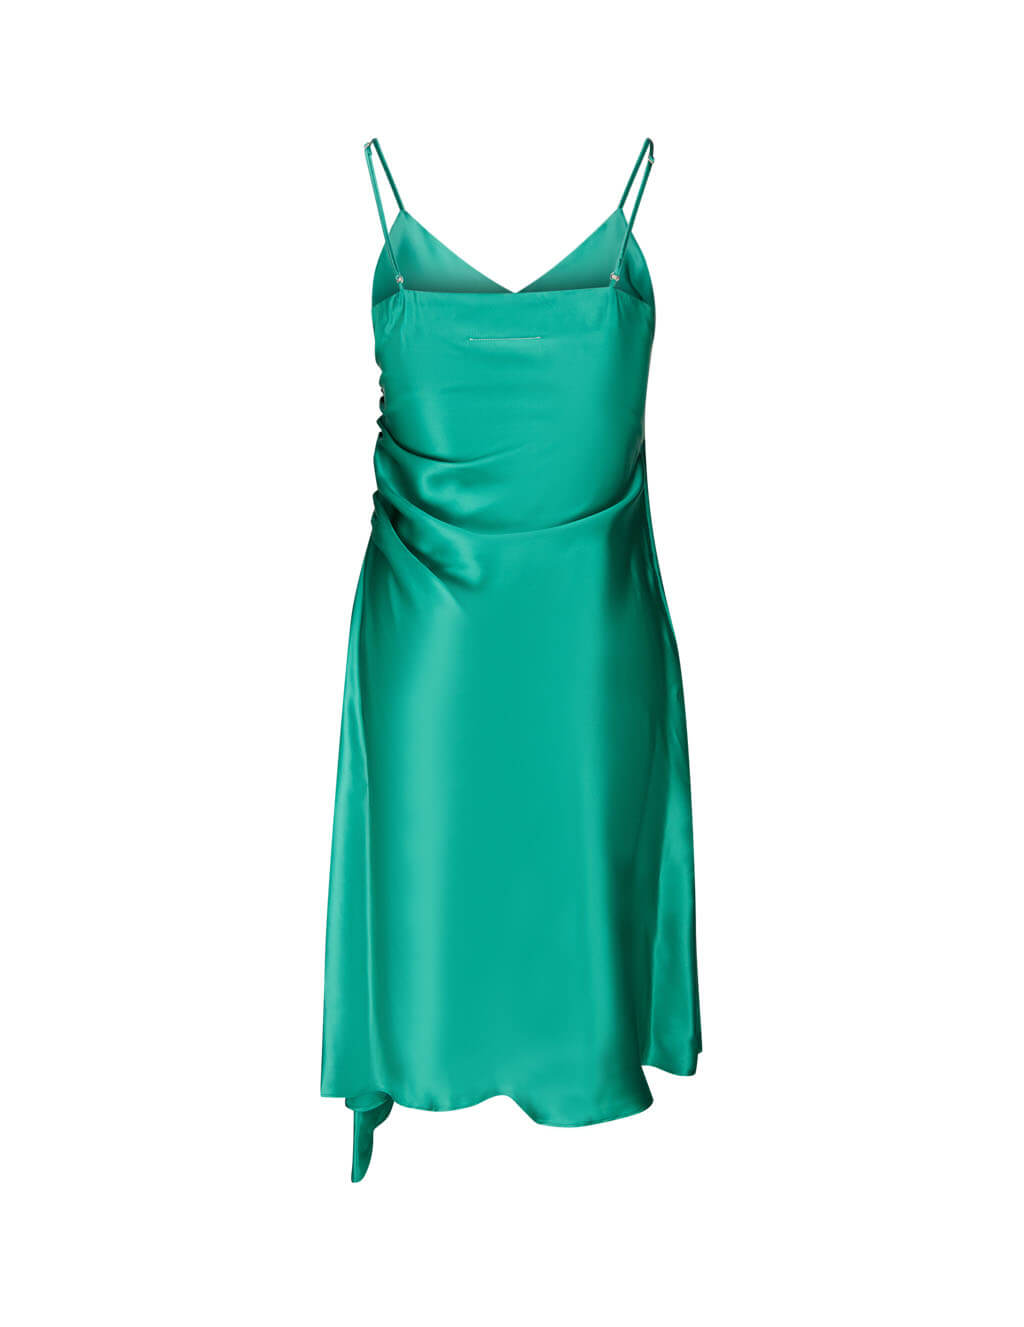 Women's Turquoise Green MM6 Maison Margiela Asymmetric Slip Dress S52CT0545S52912660